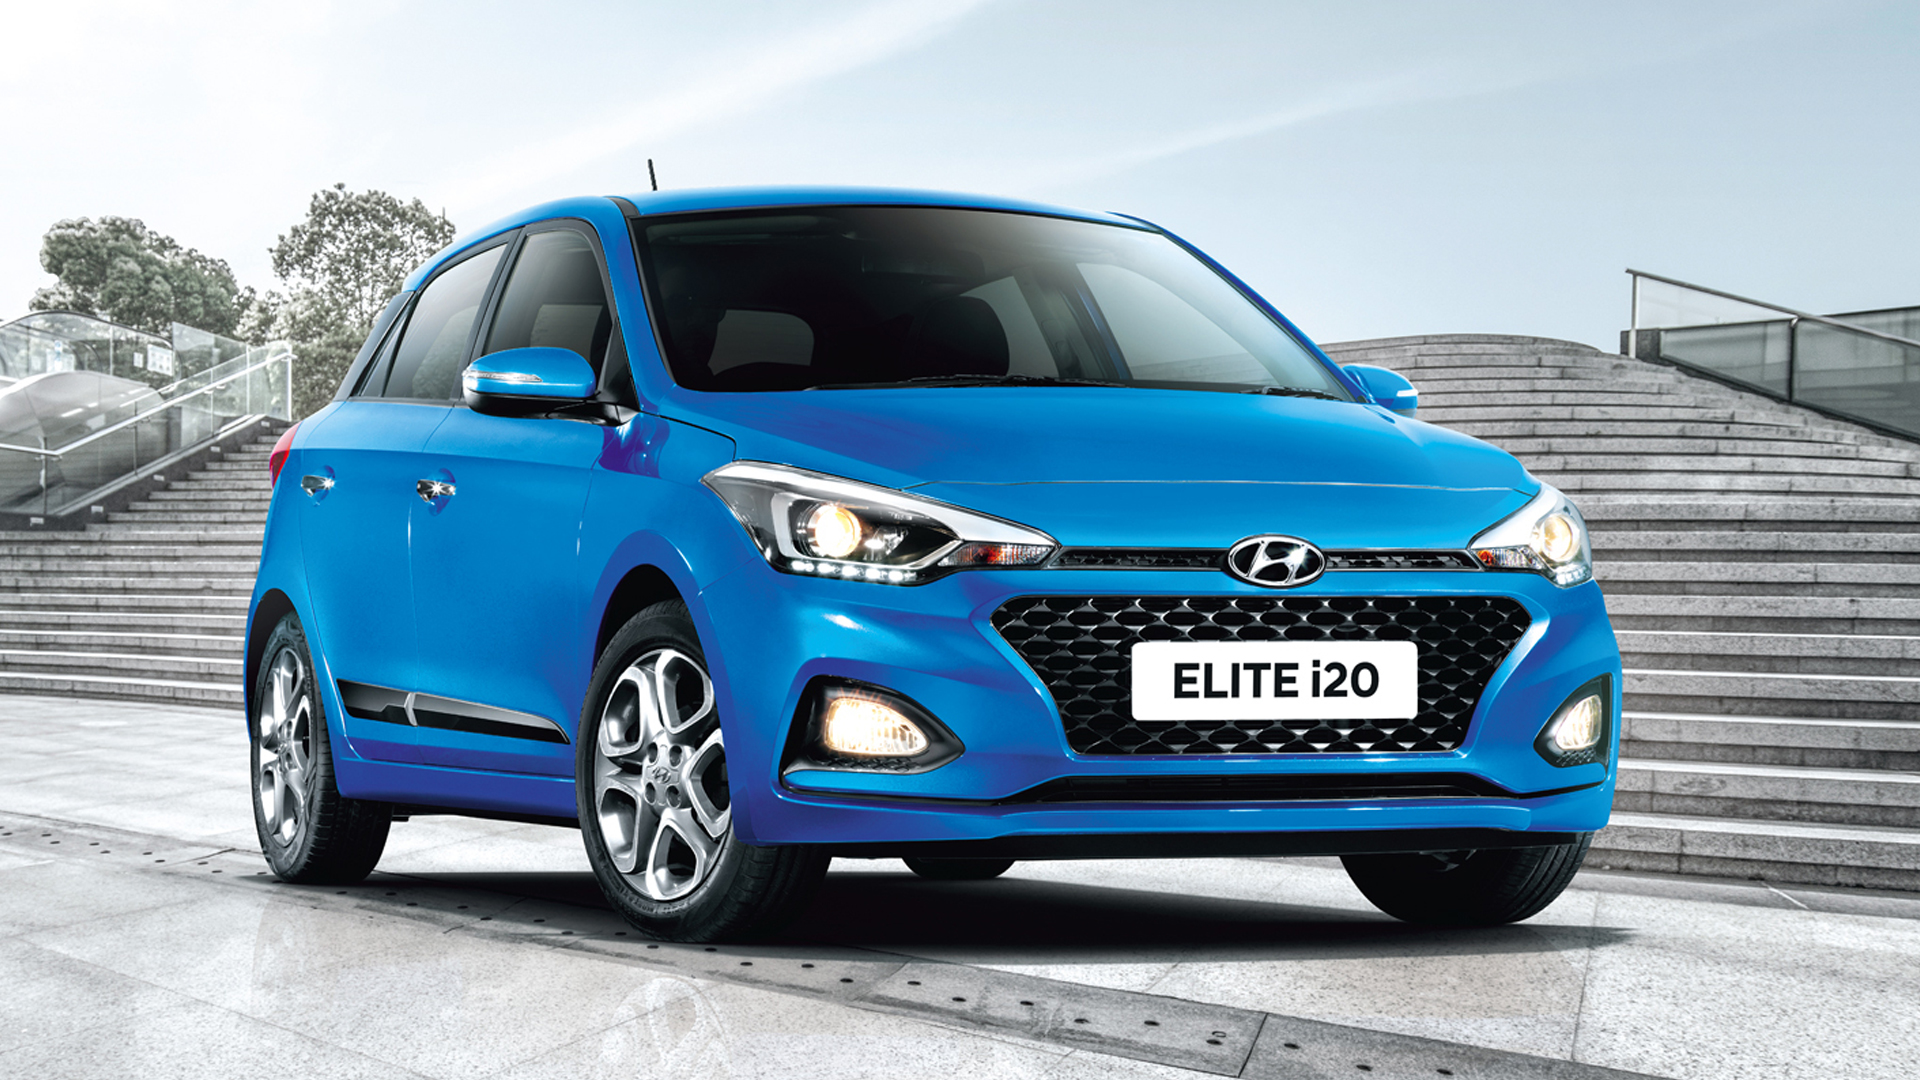 Hyundai Elite I20 2018 Price Mileage Reviews